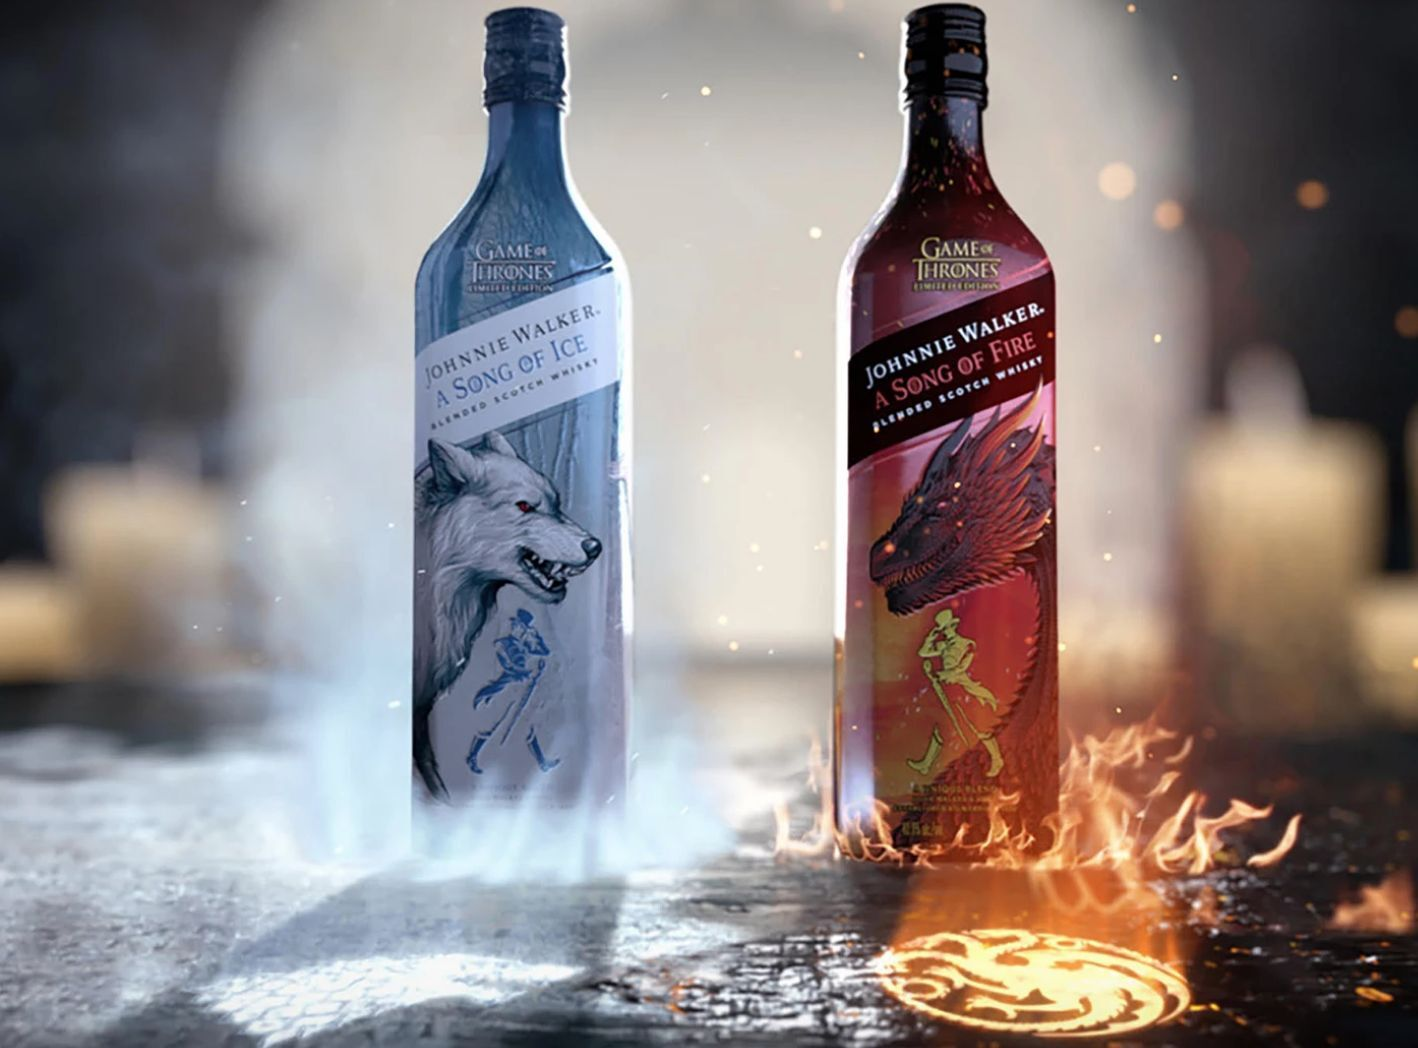 More Game of Thrones Johnnie Walker whiskies are coming